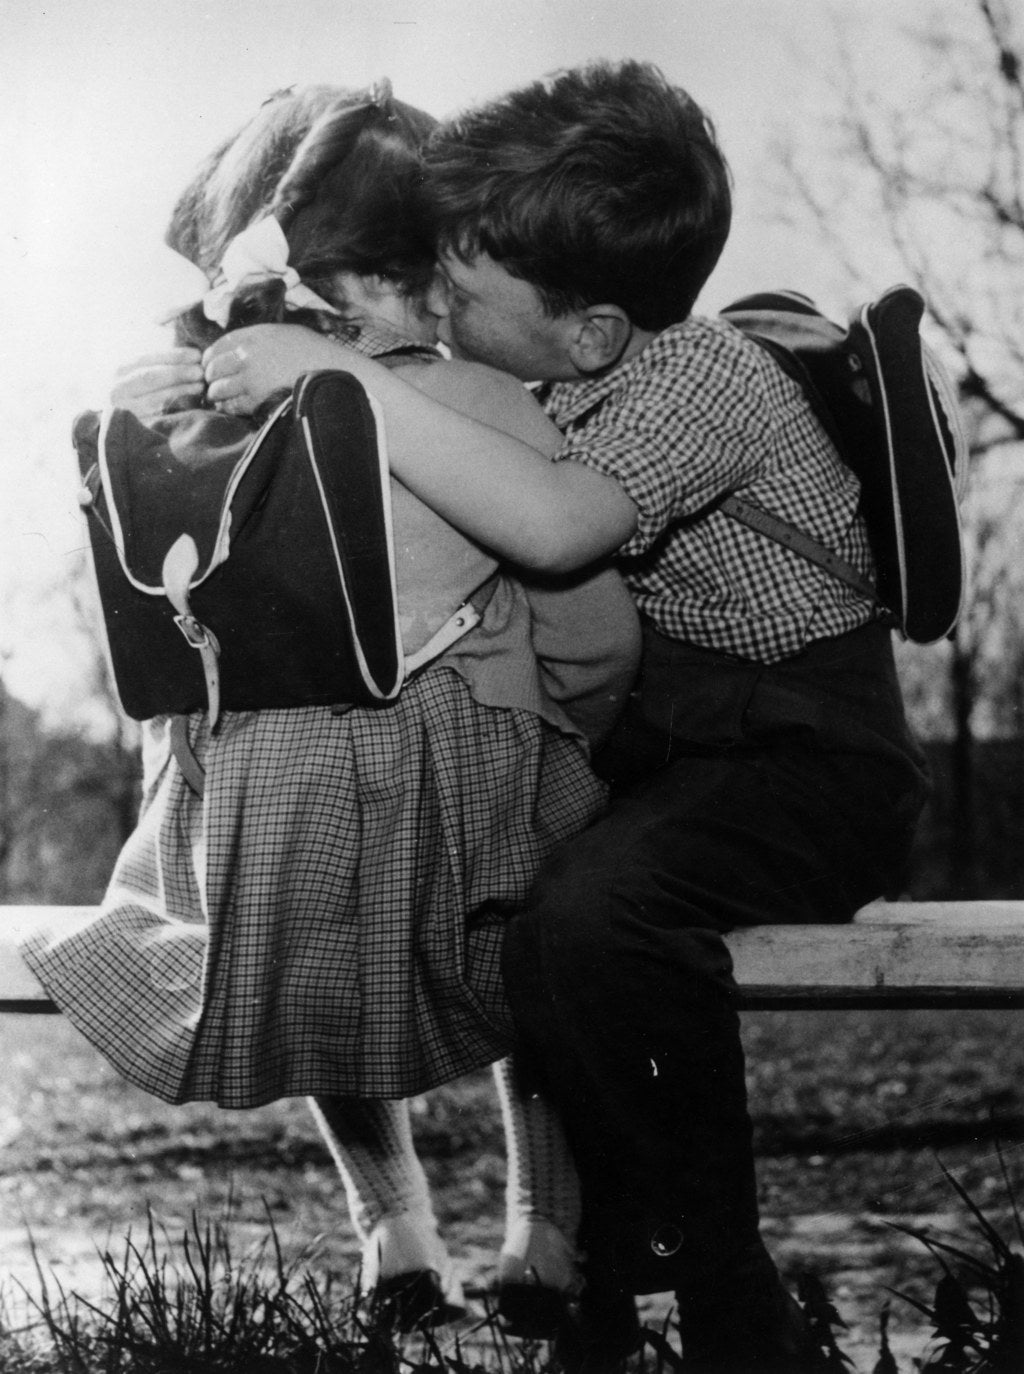 A couple of young children share an affectionate peck on the cheek. 1981.